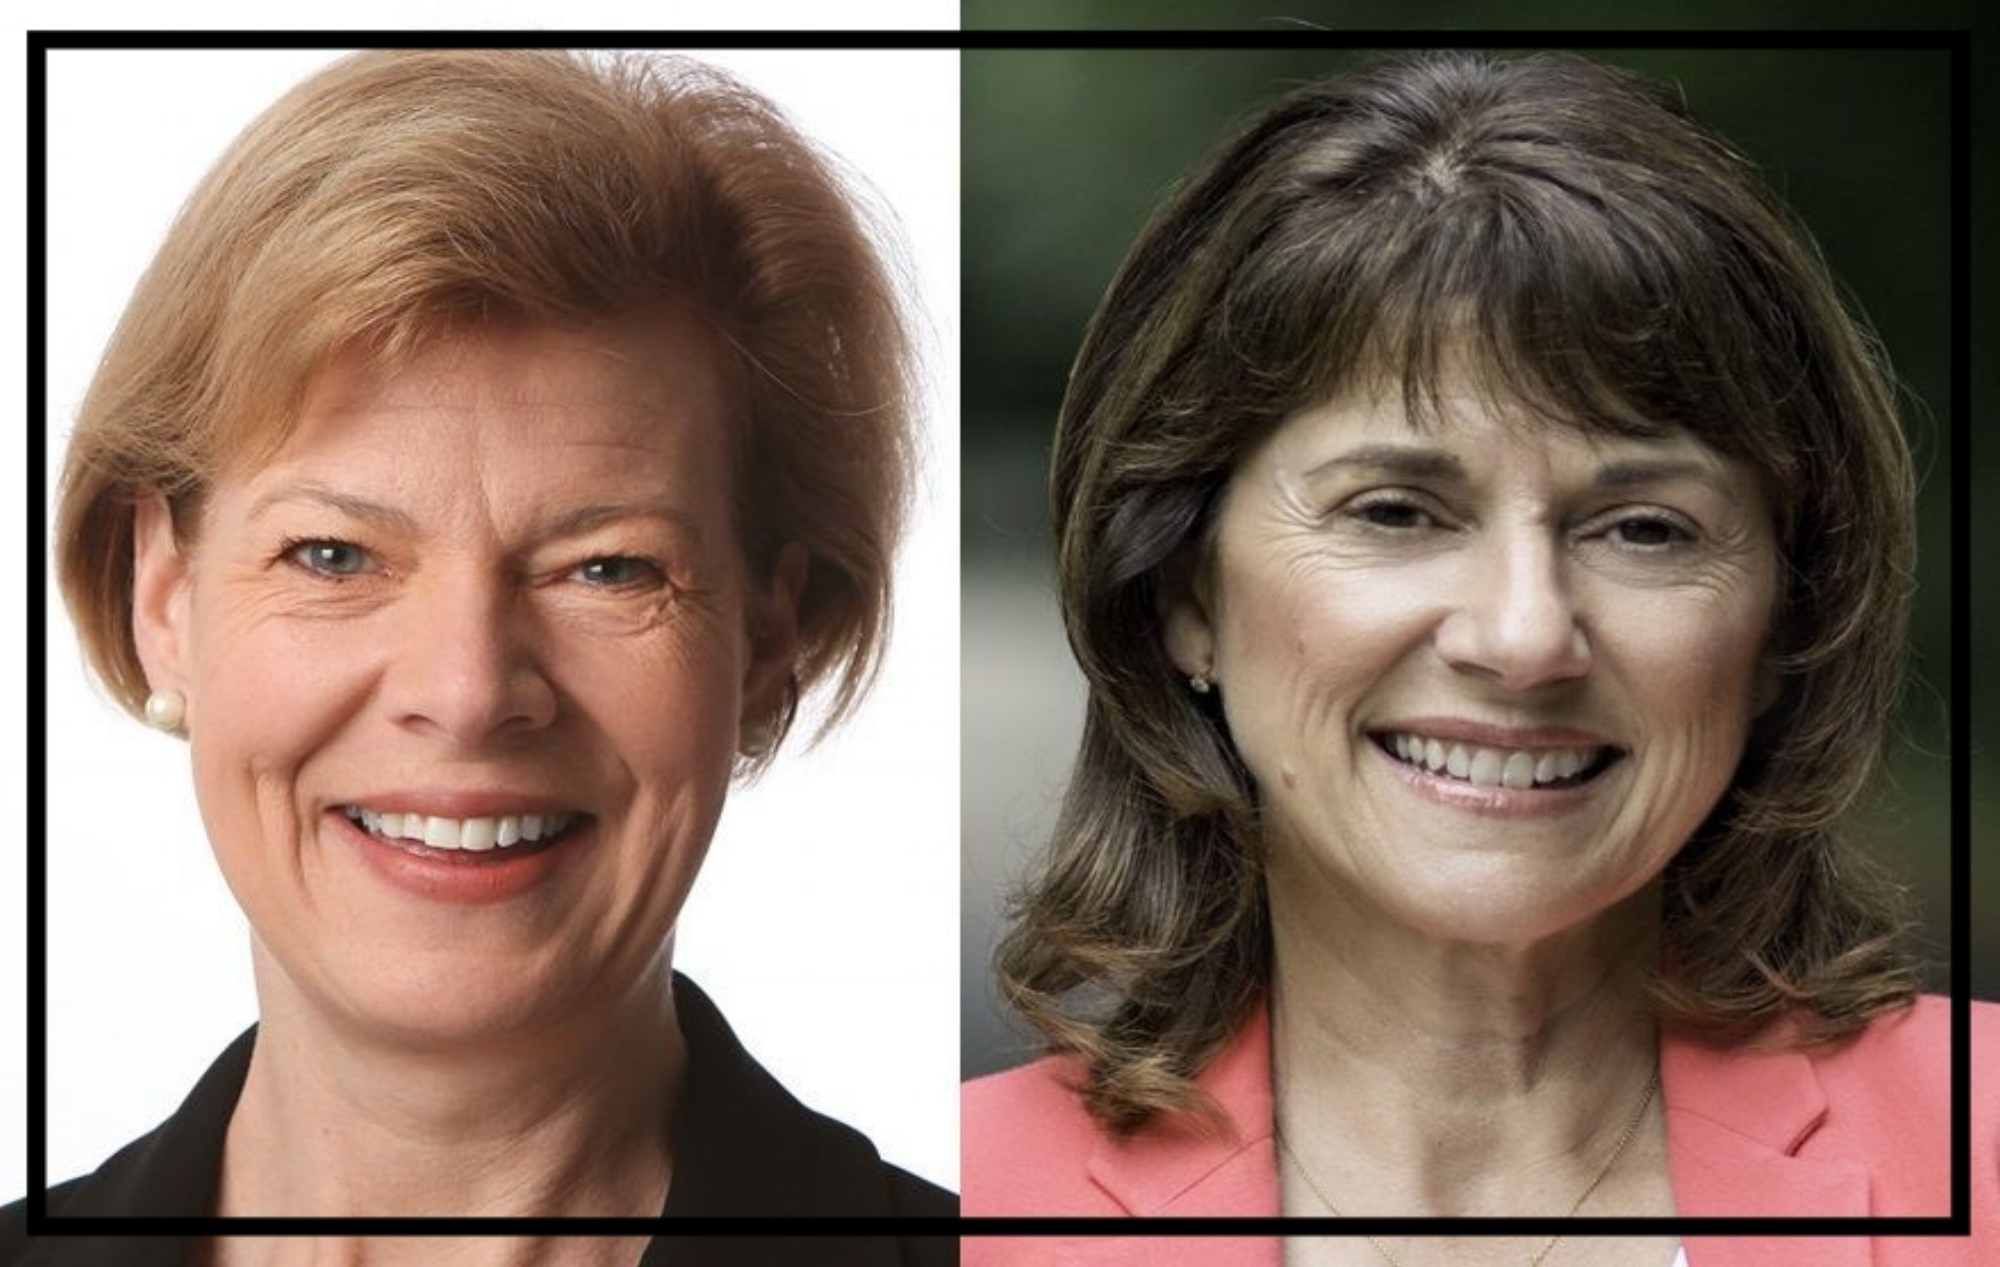 Tammy Baldwin and Leah Vukmir of Wisconsin